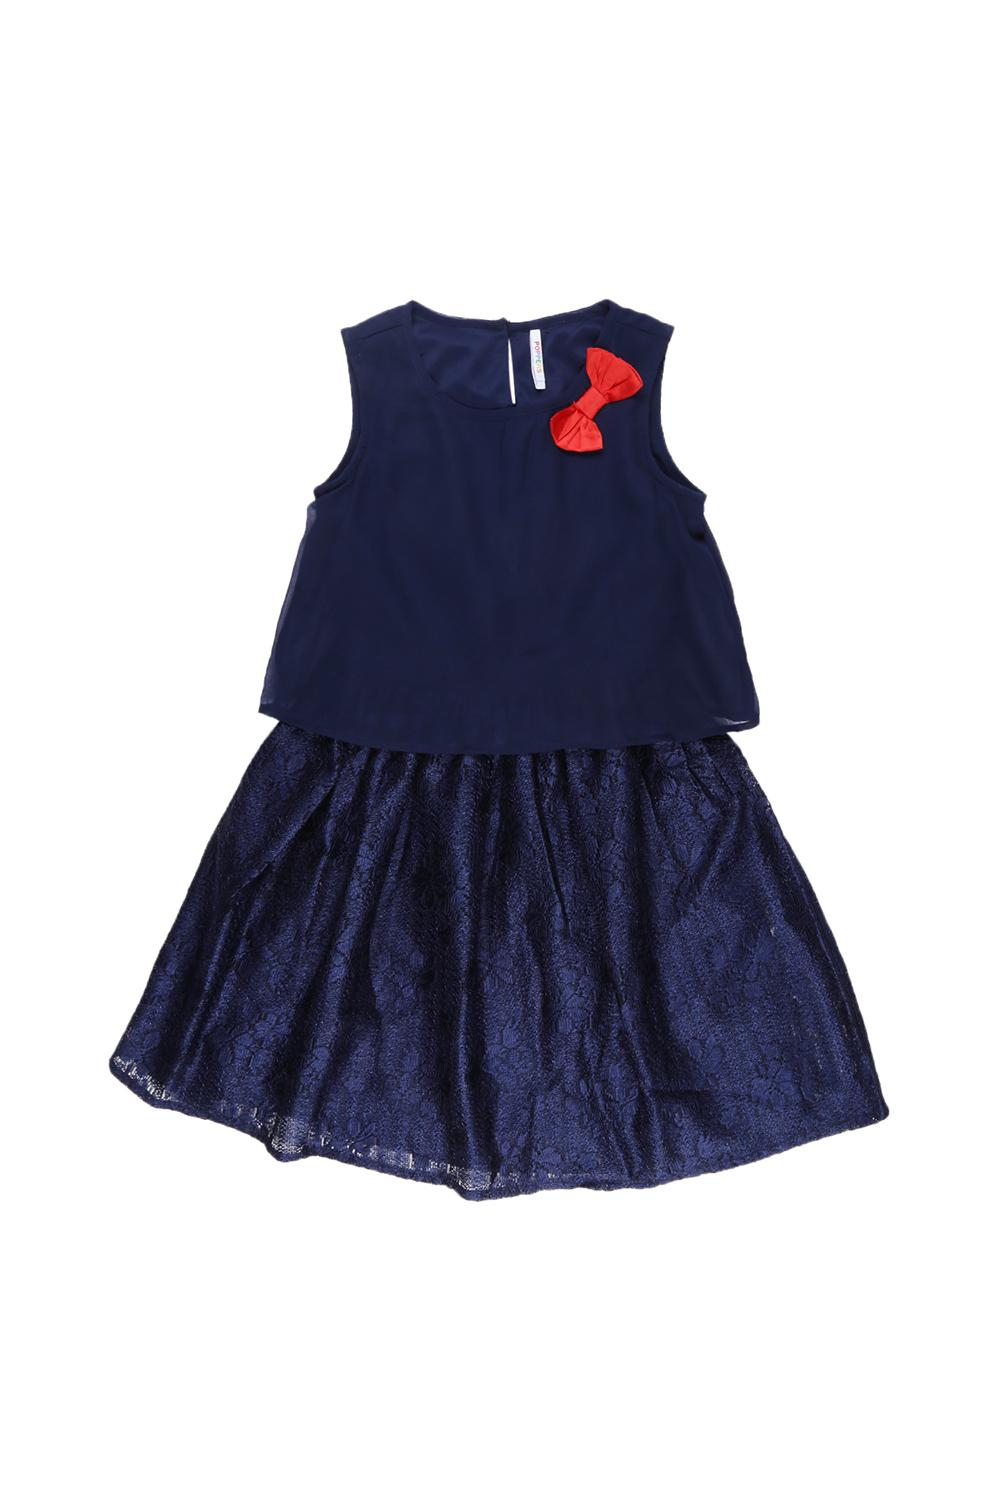 678a3d6e5c8a8 Baby Girl First Birthday Dress Online India